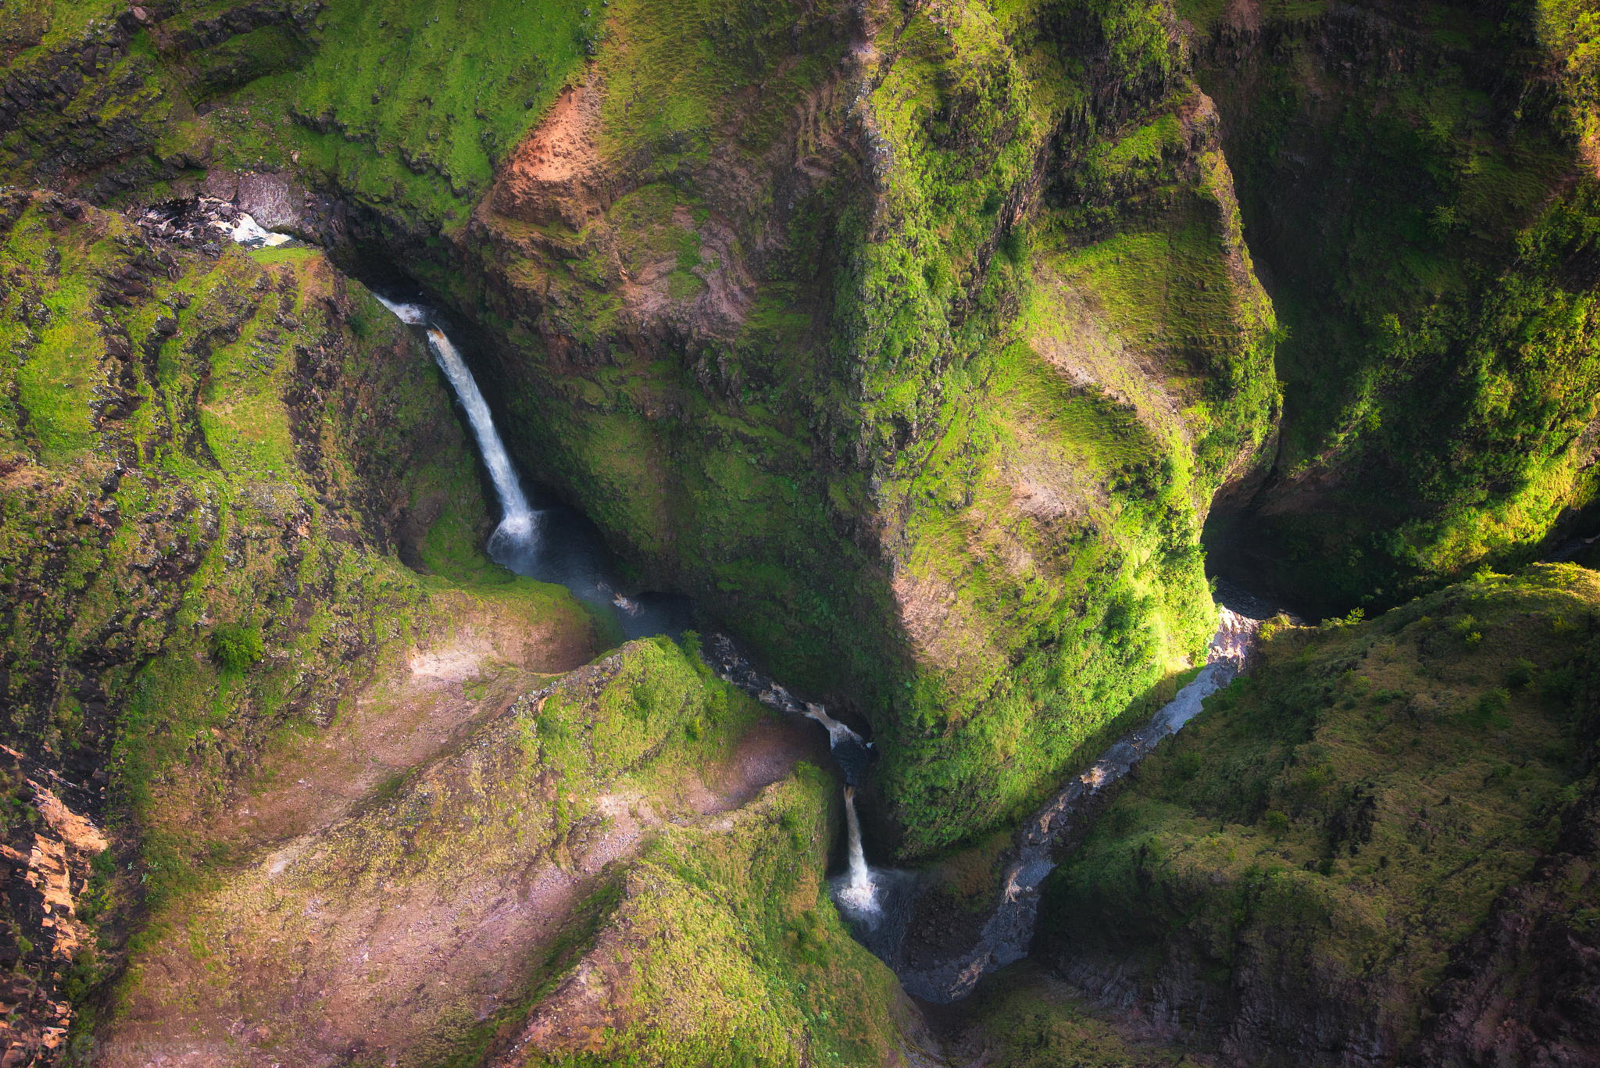 21 Photos that Prove Waterfalls Look Even Cooler from Above